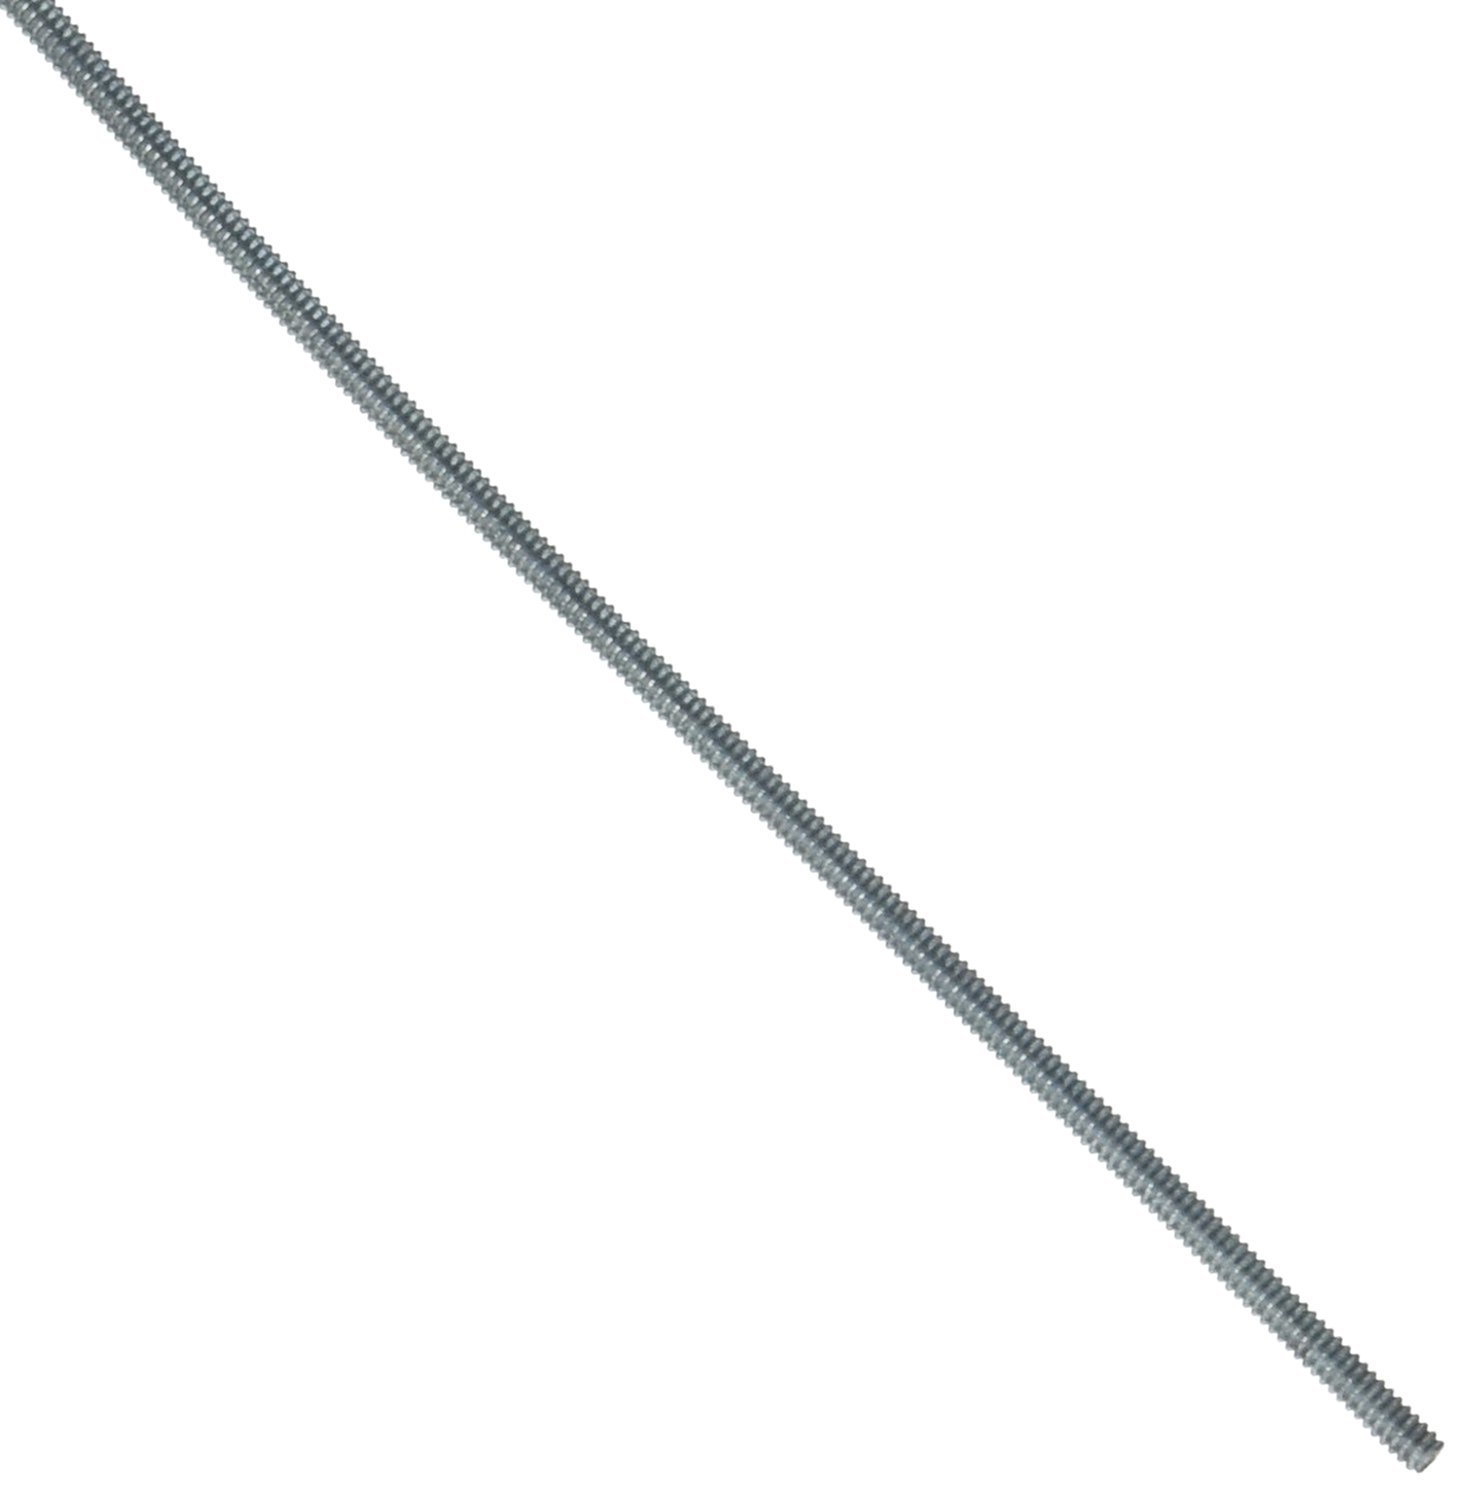 24 Length #4-40 Thread Size Zinc Plated Right Hand Threads 24 Length Small Parts 79106 Steel Fully Threaded Rod